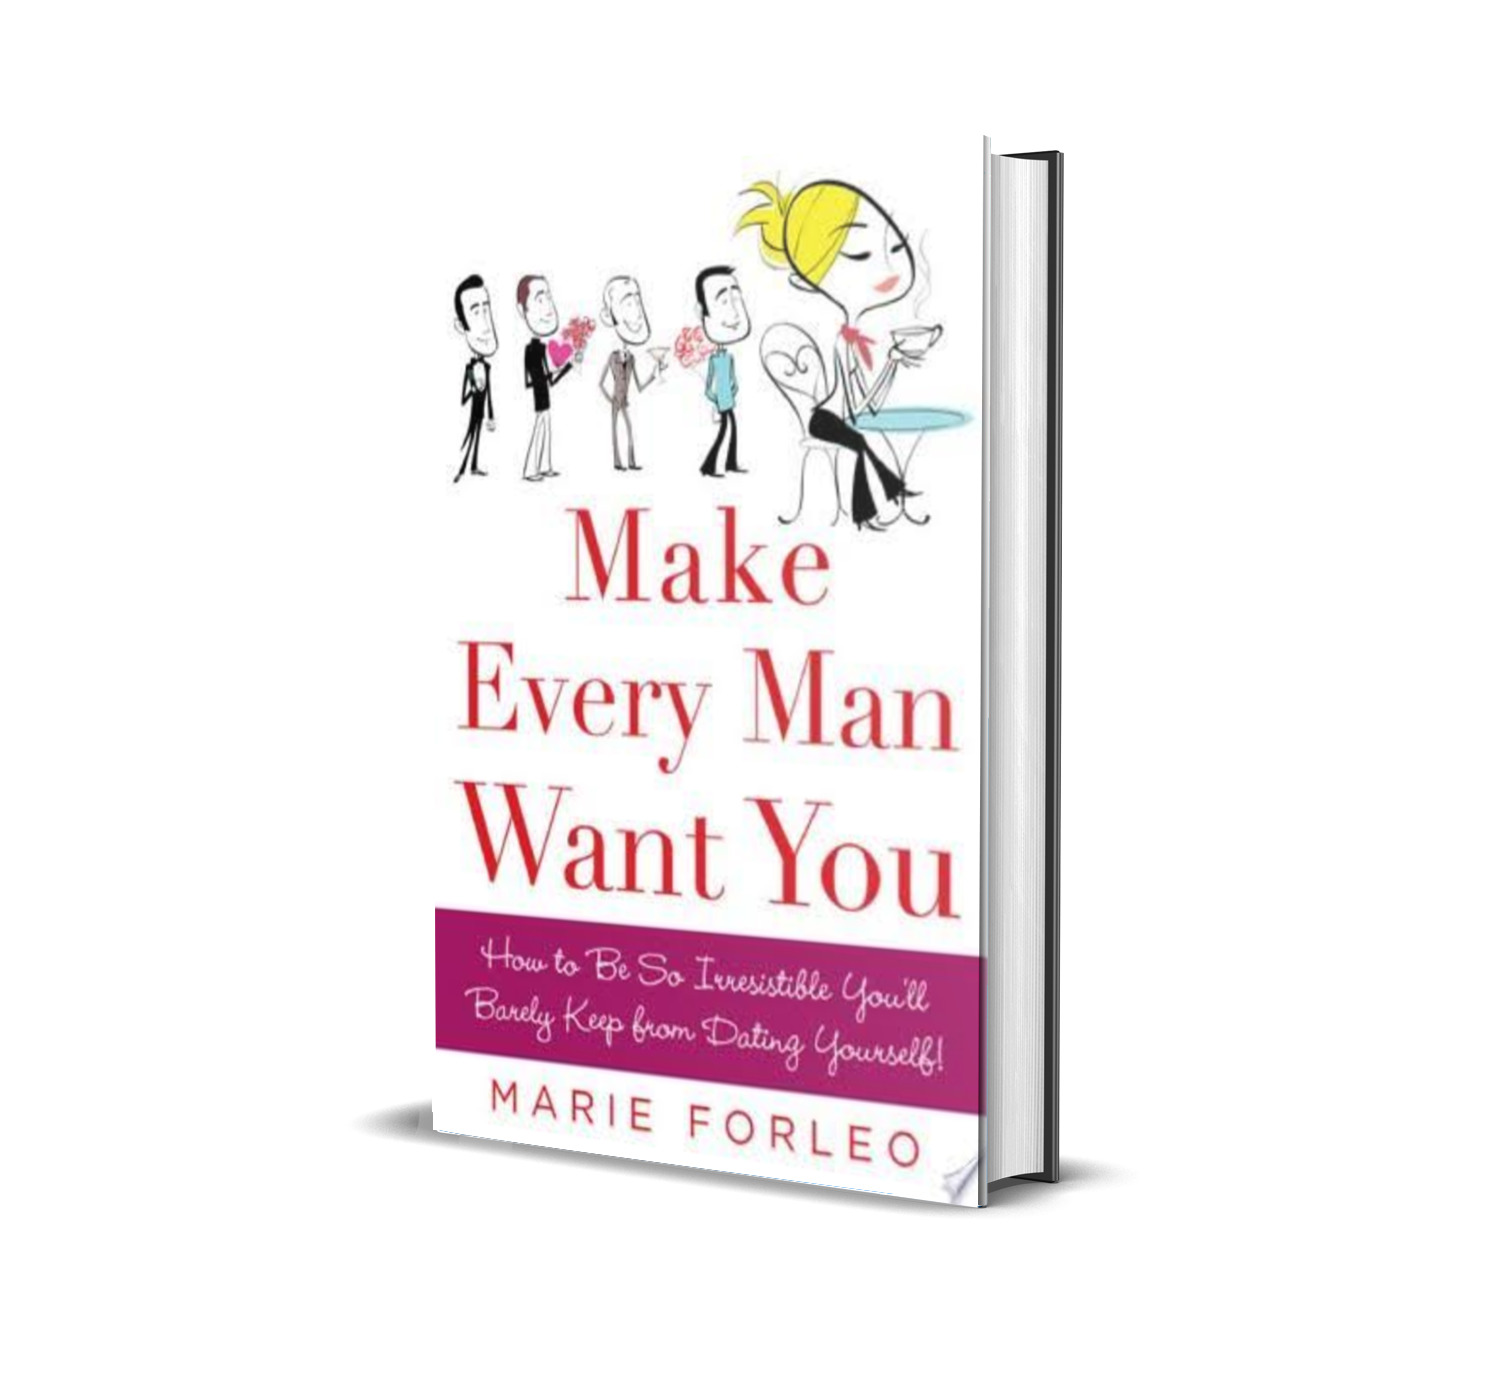 Make ever man want you- Marie Forleo